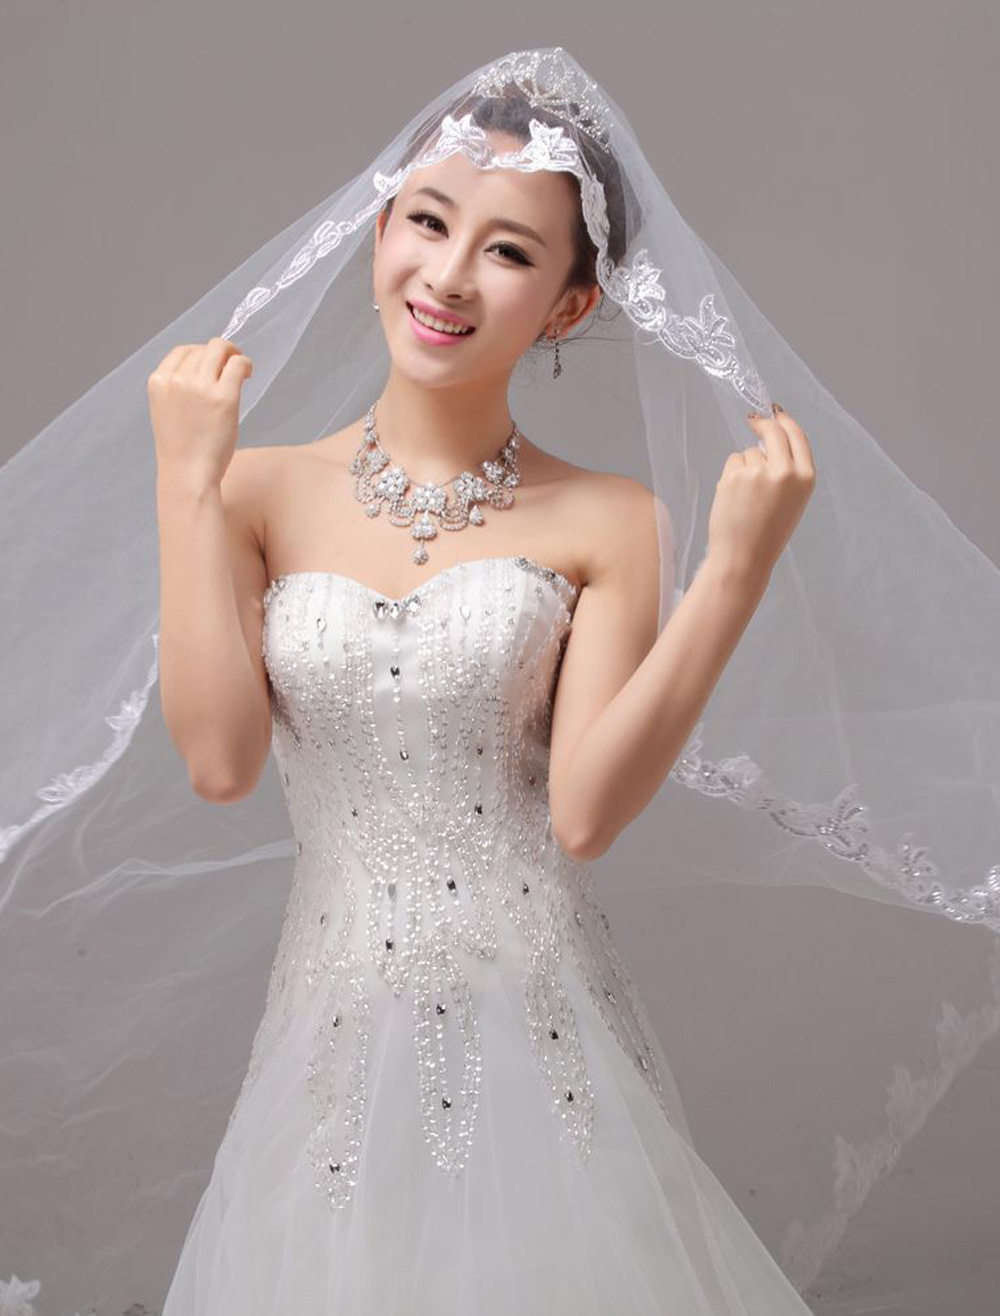 Waterfall Romantic Lace Applique Edge Cathedral Wedding Veil In One-Tier